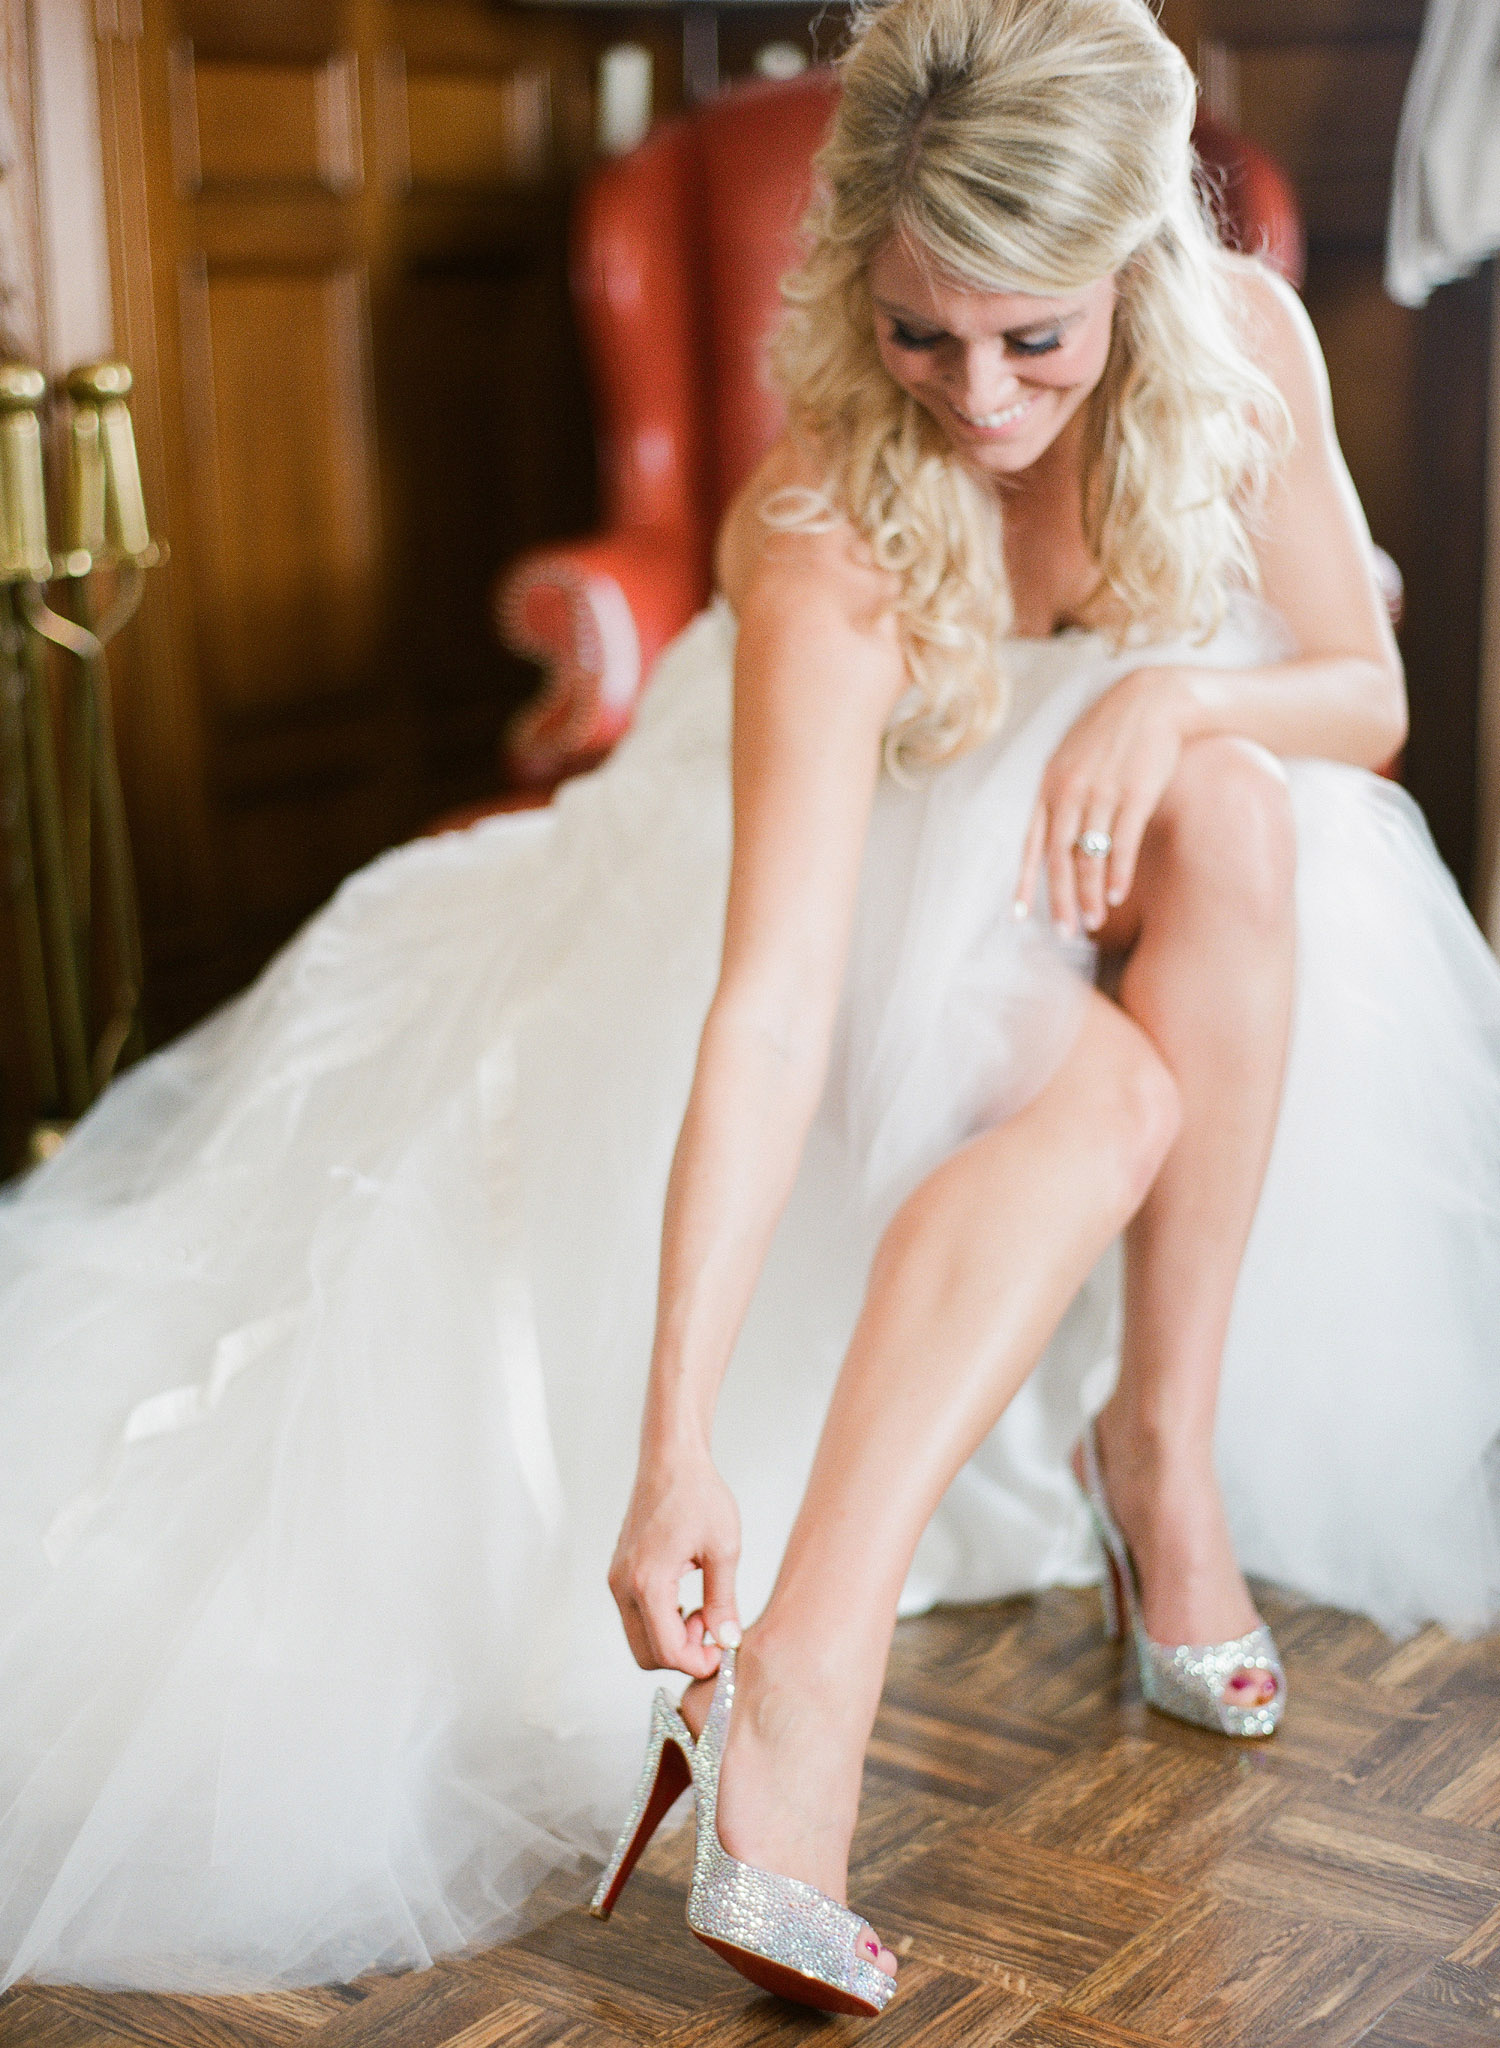 top destination wedding photographer photographs the wedding of NFL football star Bryan Bulaga's wedding in Milwaukee Wisconsin at the Hilton. Abbie is wearing Christian Louboutin heels for her wedding